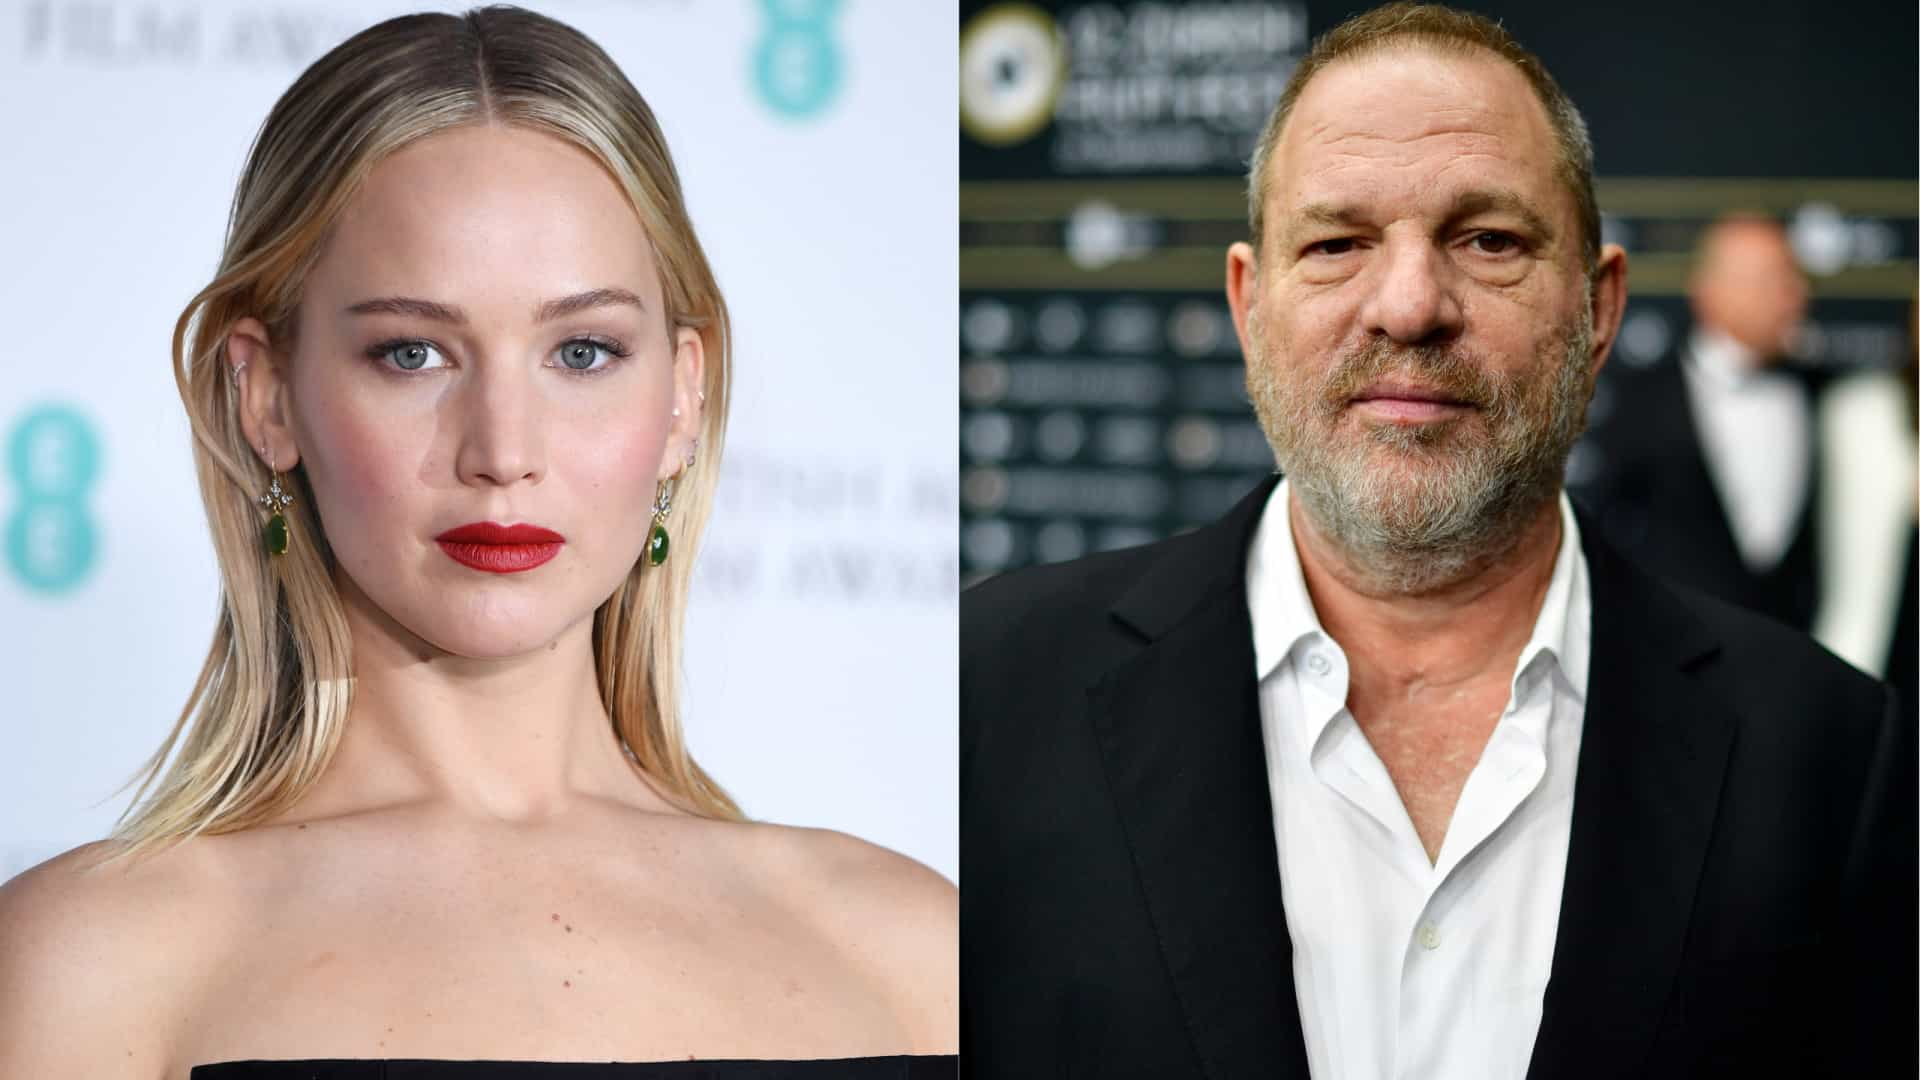 Lawrence arrasa defesa de Weinstein: